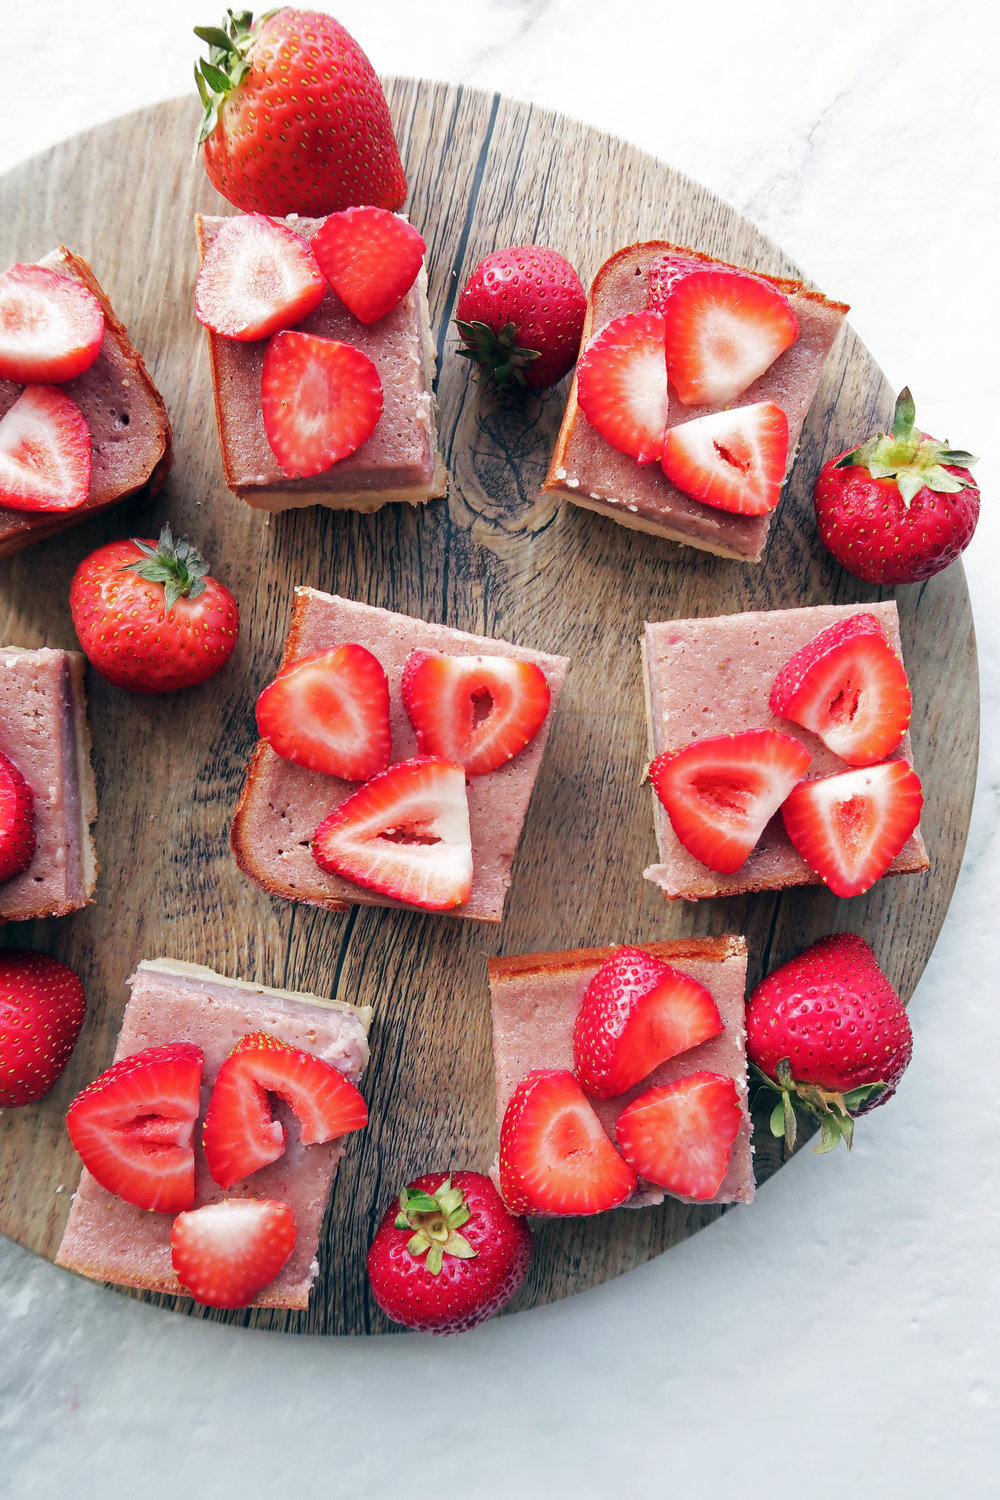 Overhead view of strawberry shortboard bars with fresh strawberry slices on top on a round wooden platter.